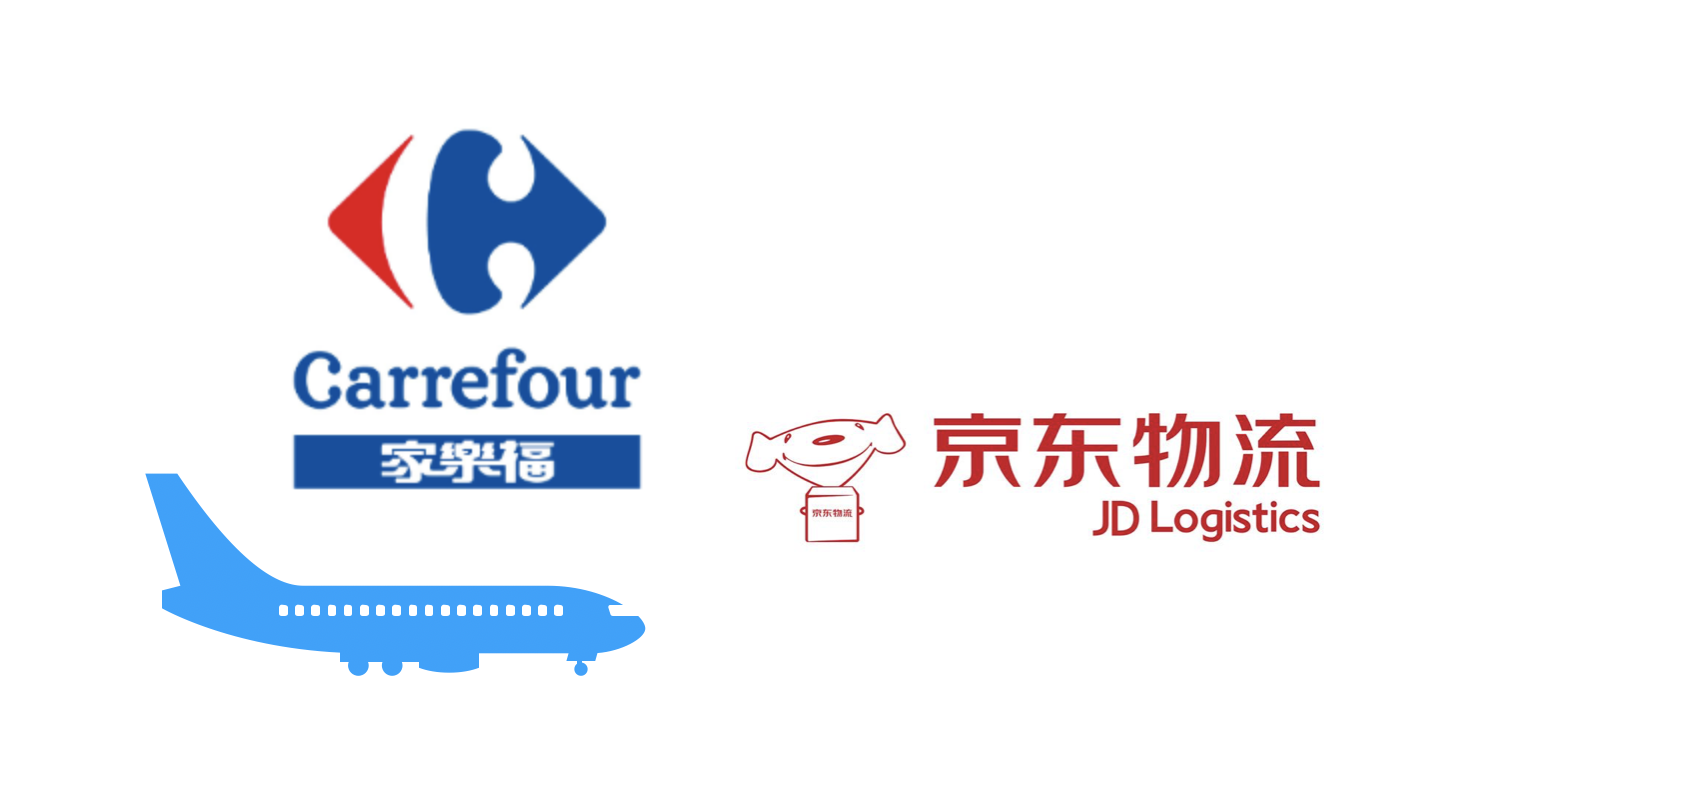 JD Unit Joined by French Giant Carrefour in Logistics